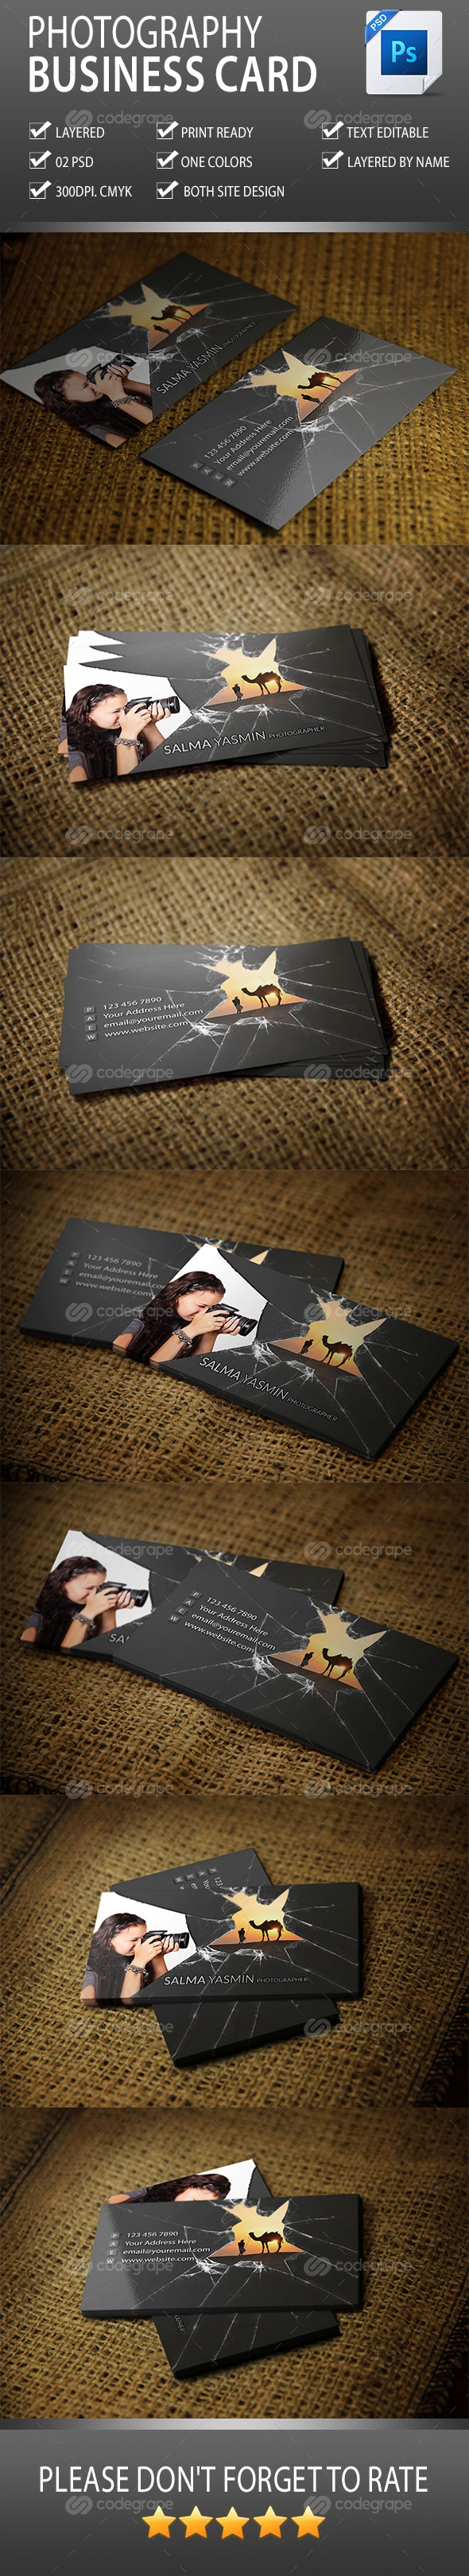 Photography Business Card Vol-2.0